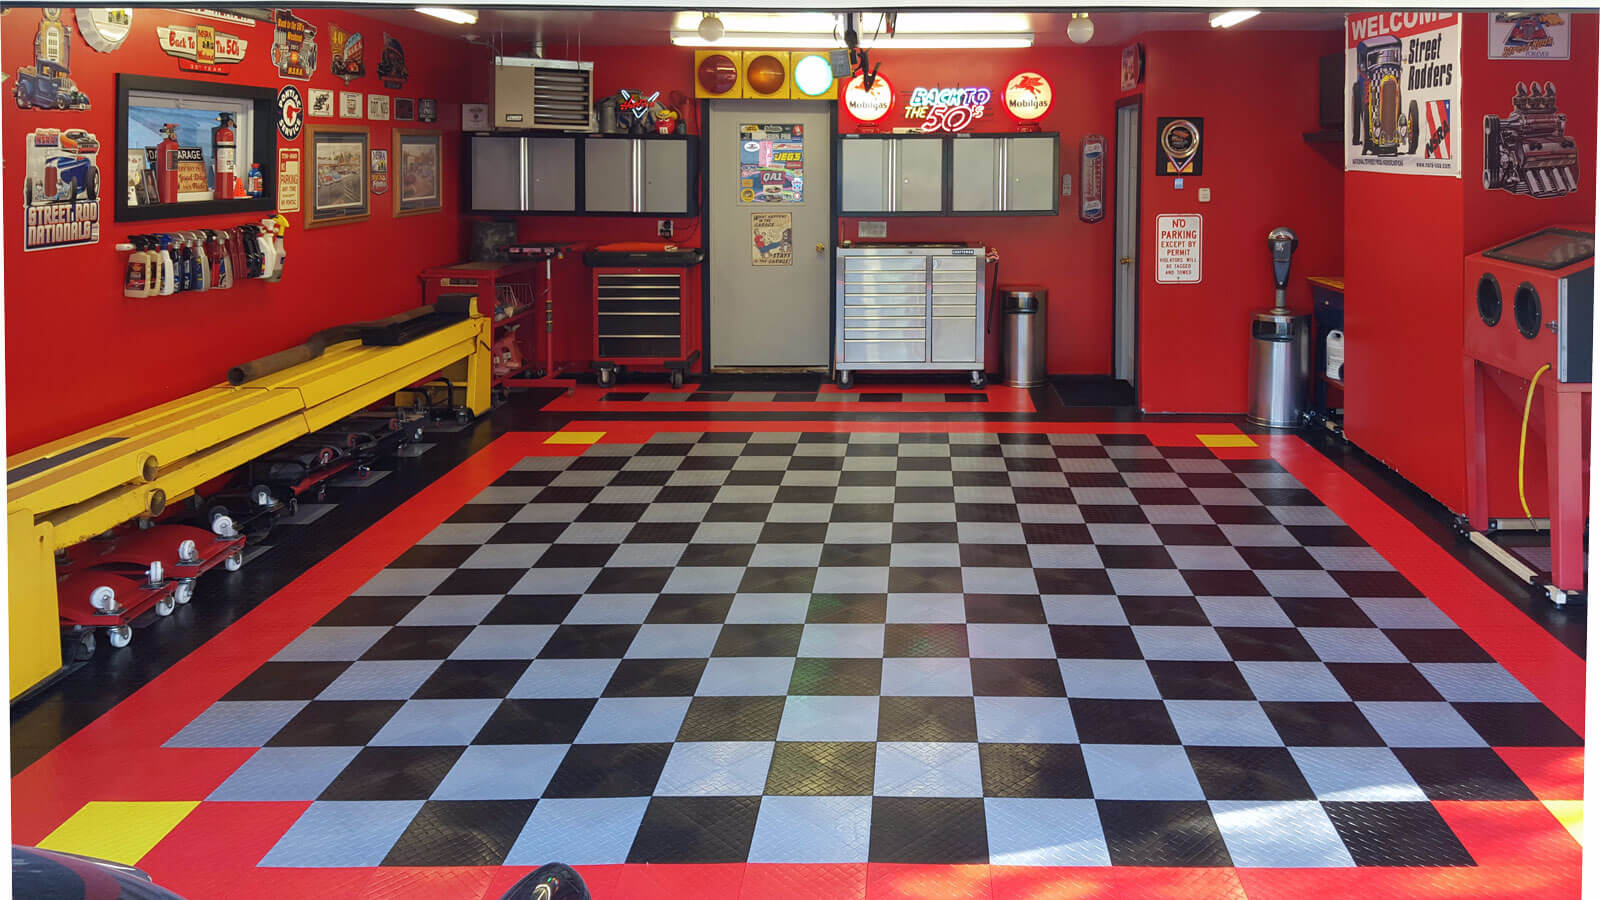 Garage flooring buying guide tiles rolls epoxy more